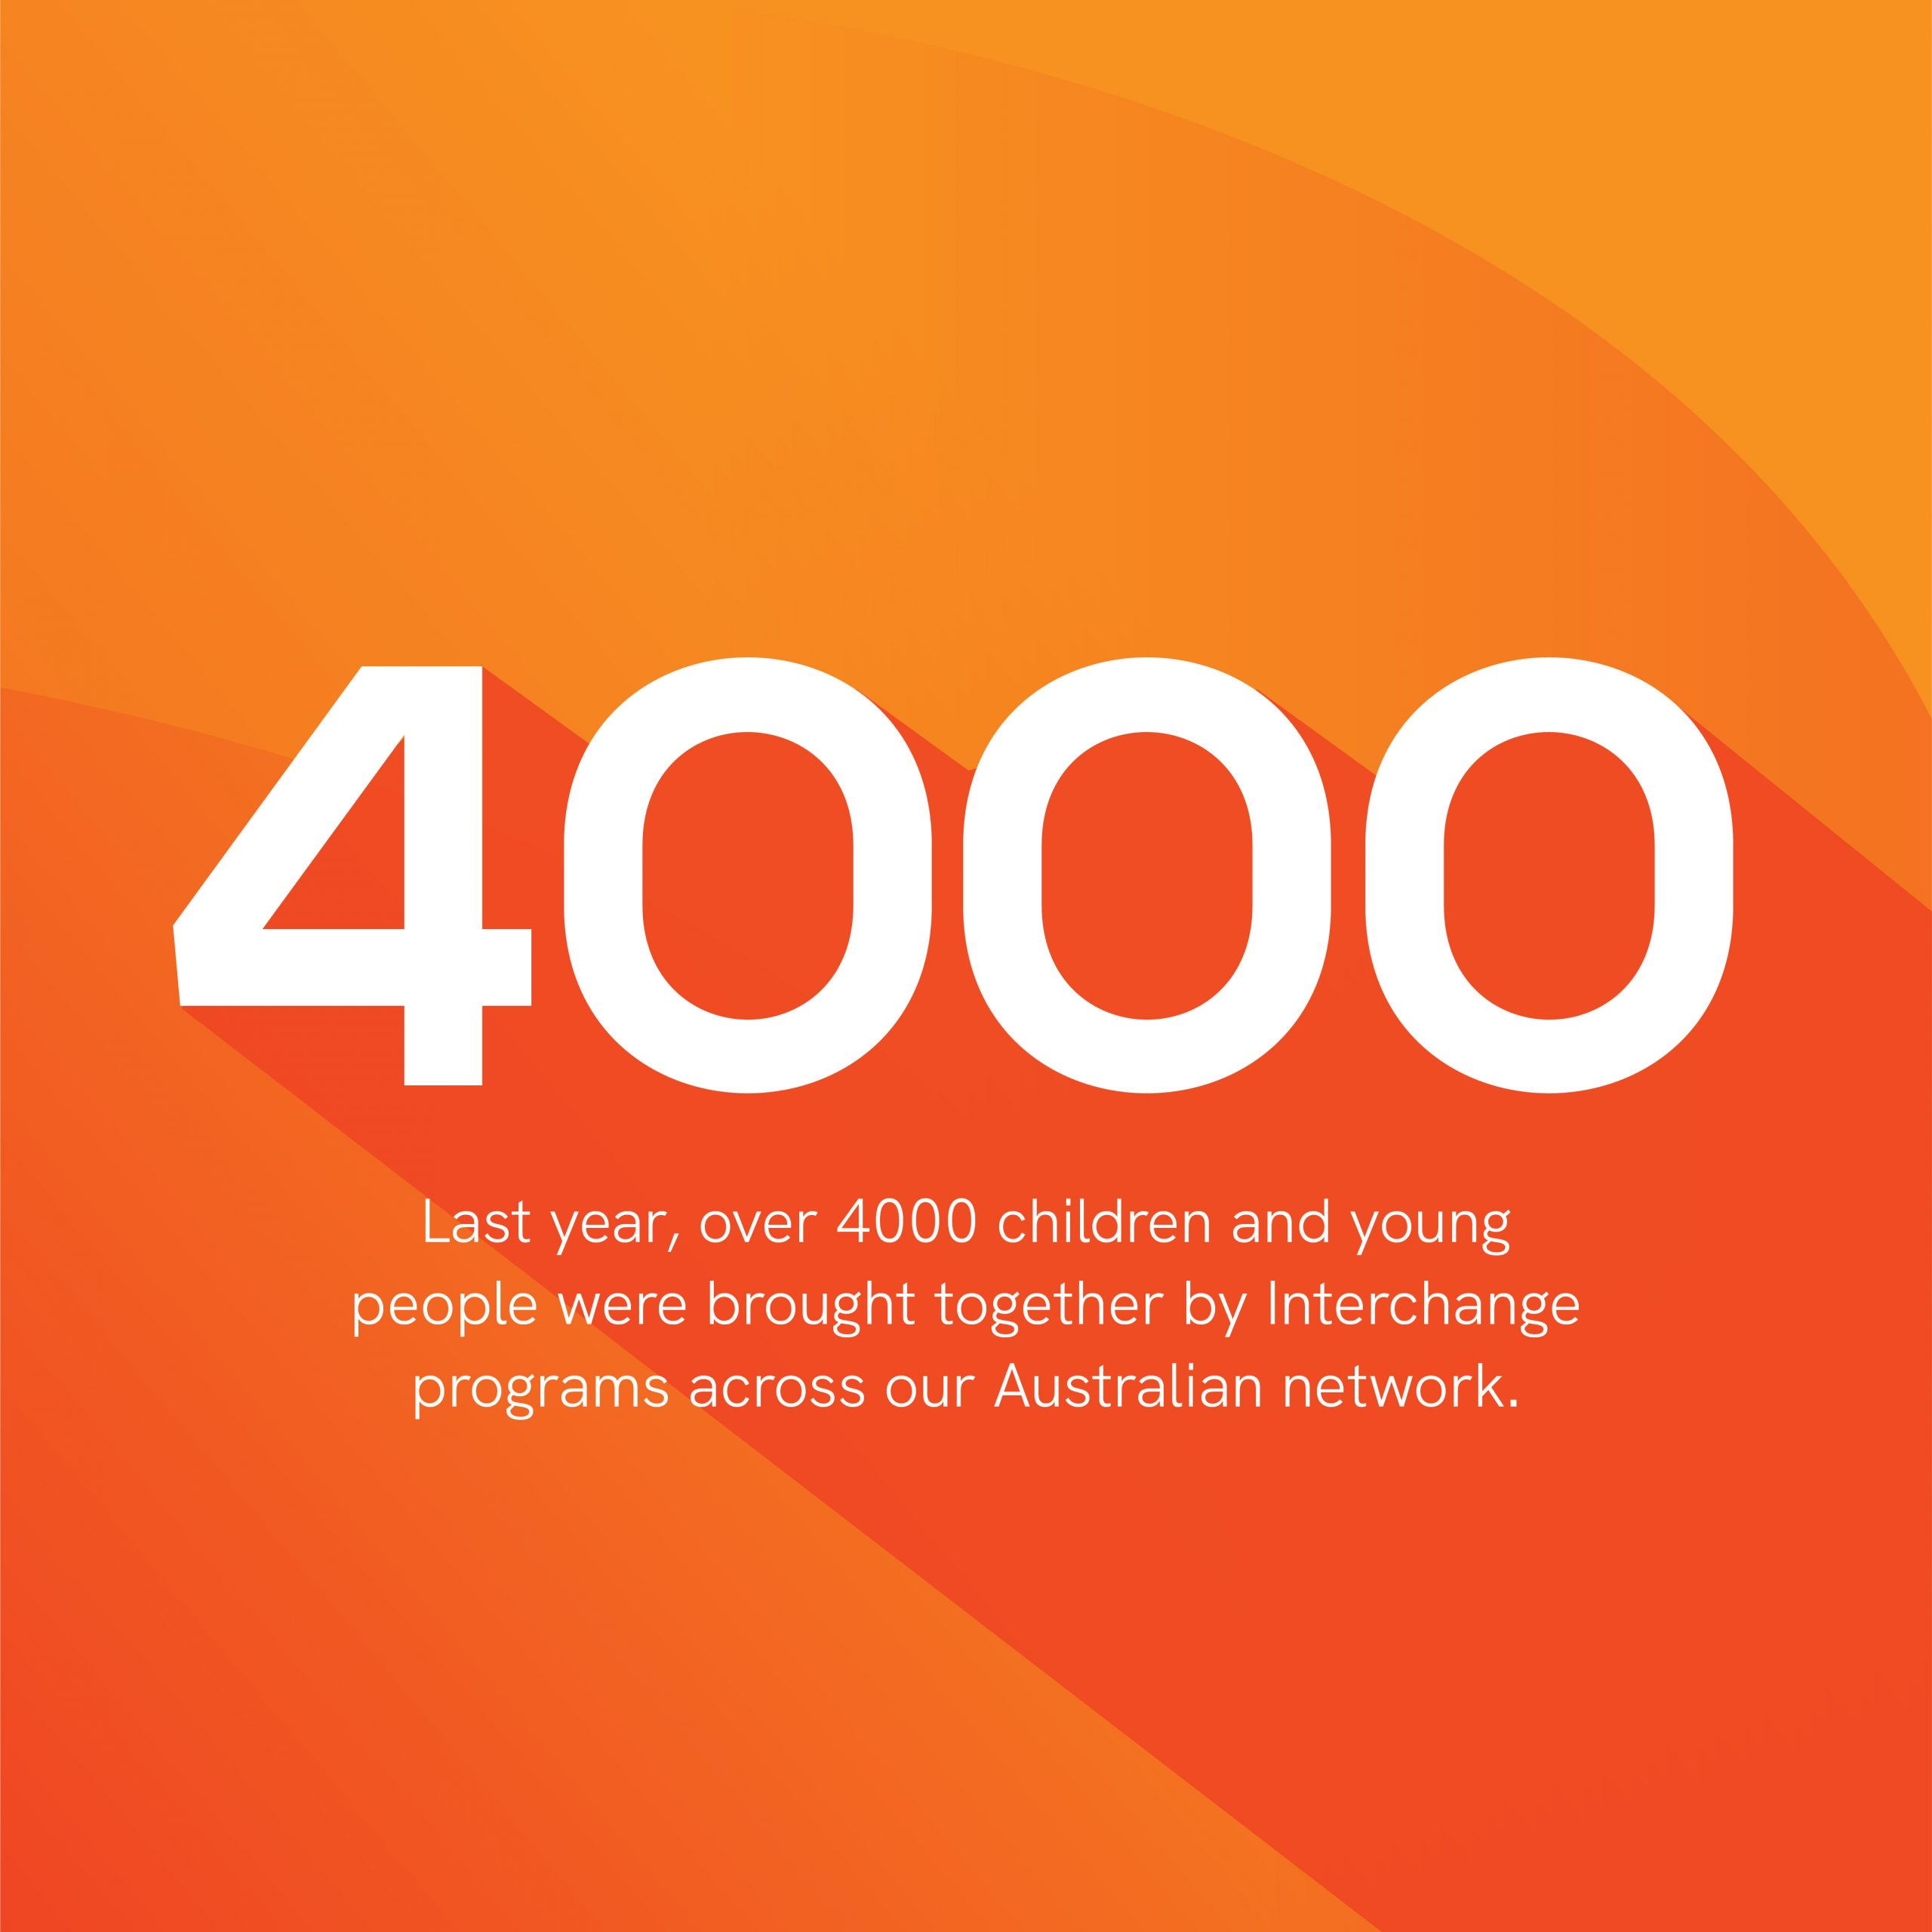 iGraphic 4000 children and young people brought together by Interchange programs